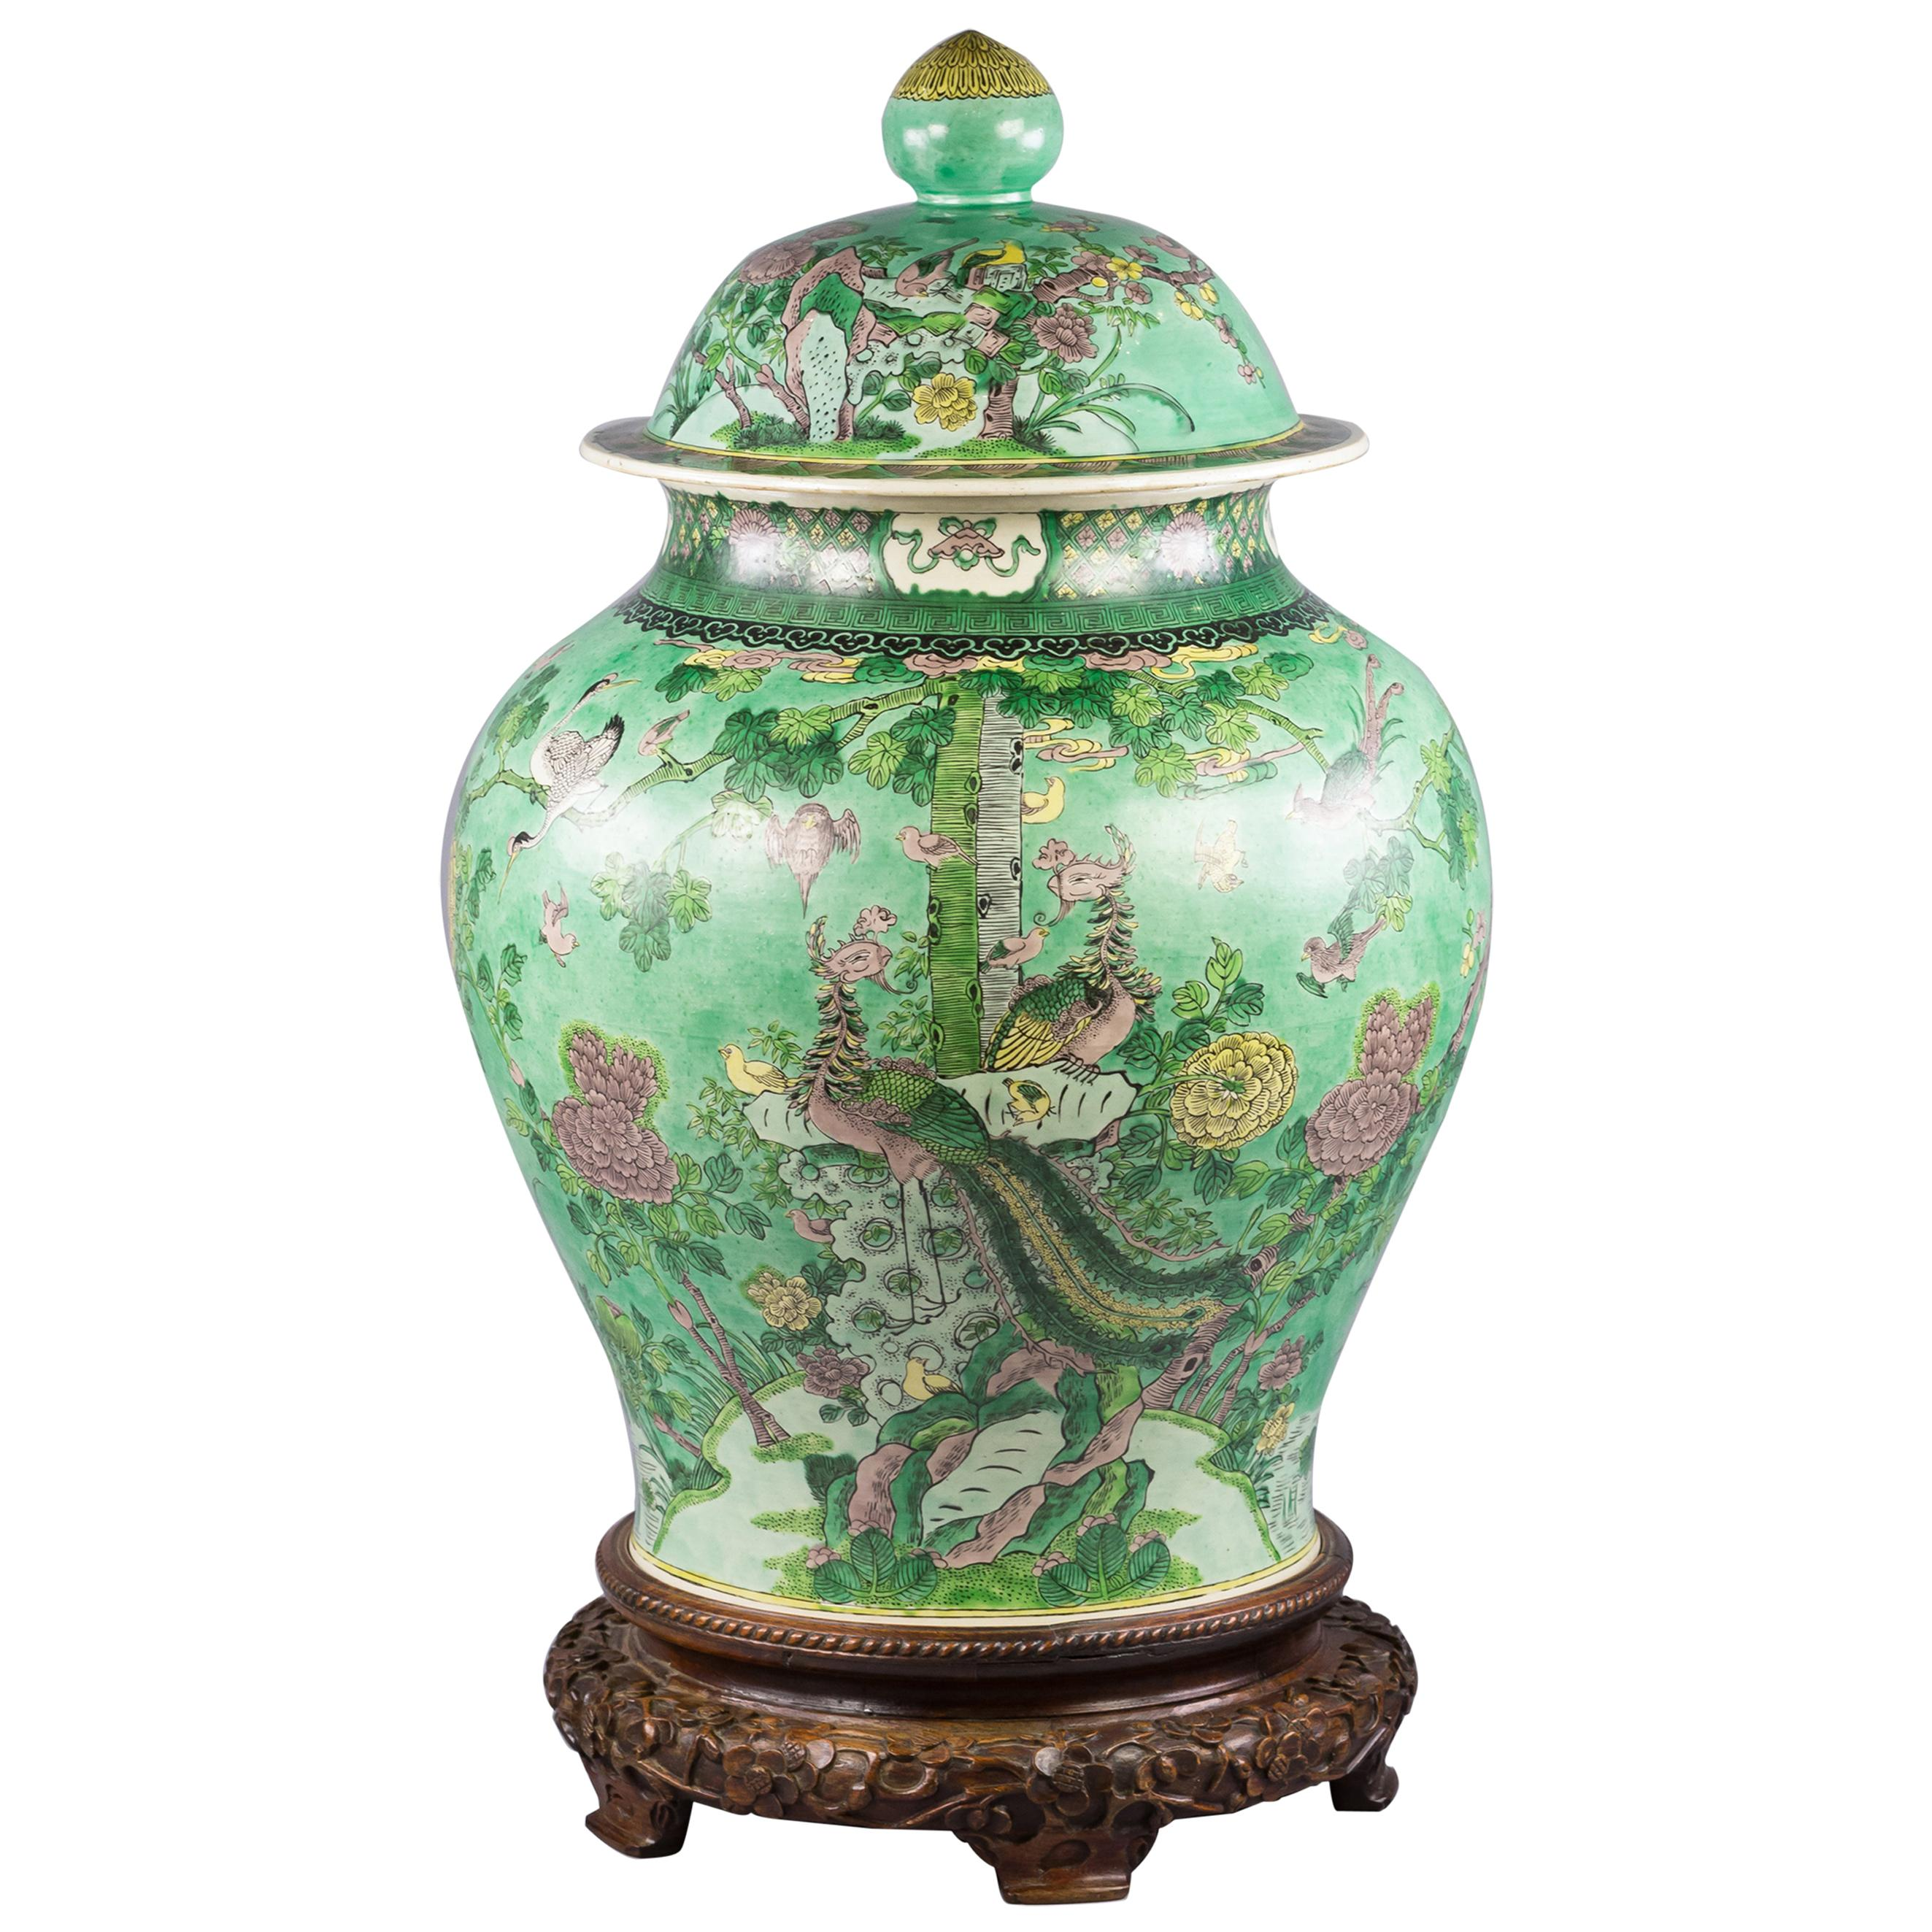 One Large Chinese Porcelain Famille Verte Covered Vase on Stand, circa 1860